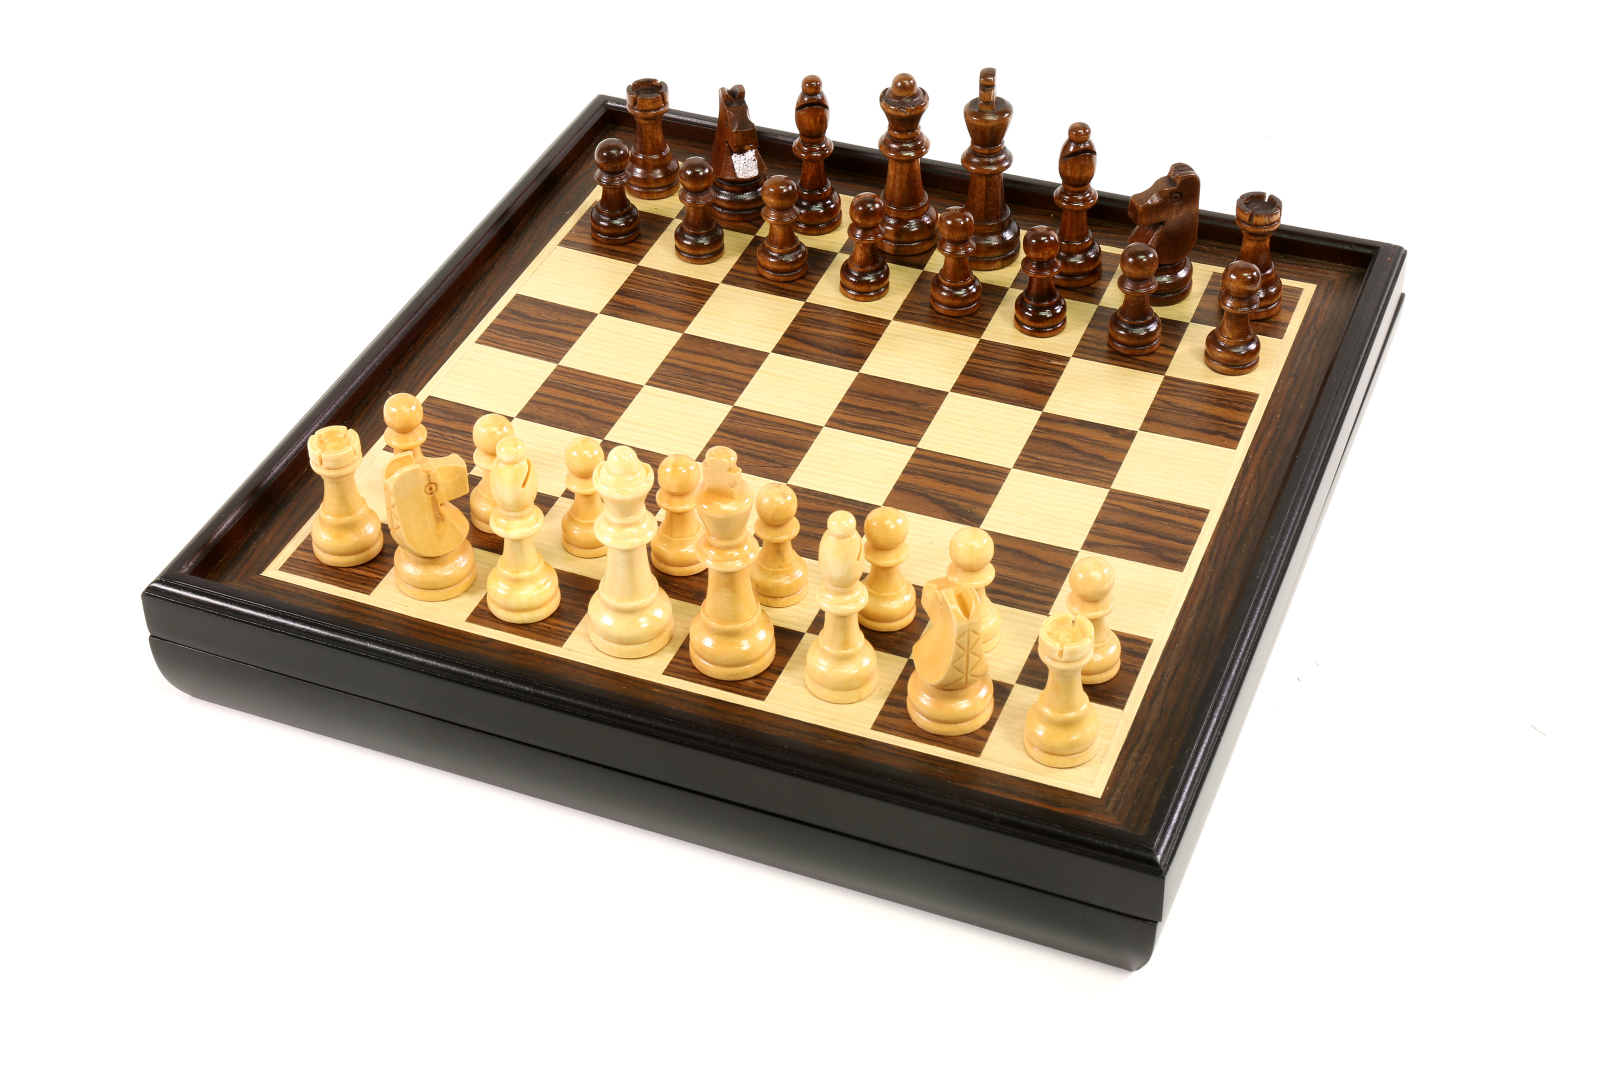 Craftsman Natural Wood Veneer Deluxe Chess Set by Merchant Ambassador (Holdings) Limited